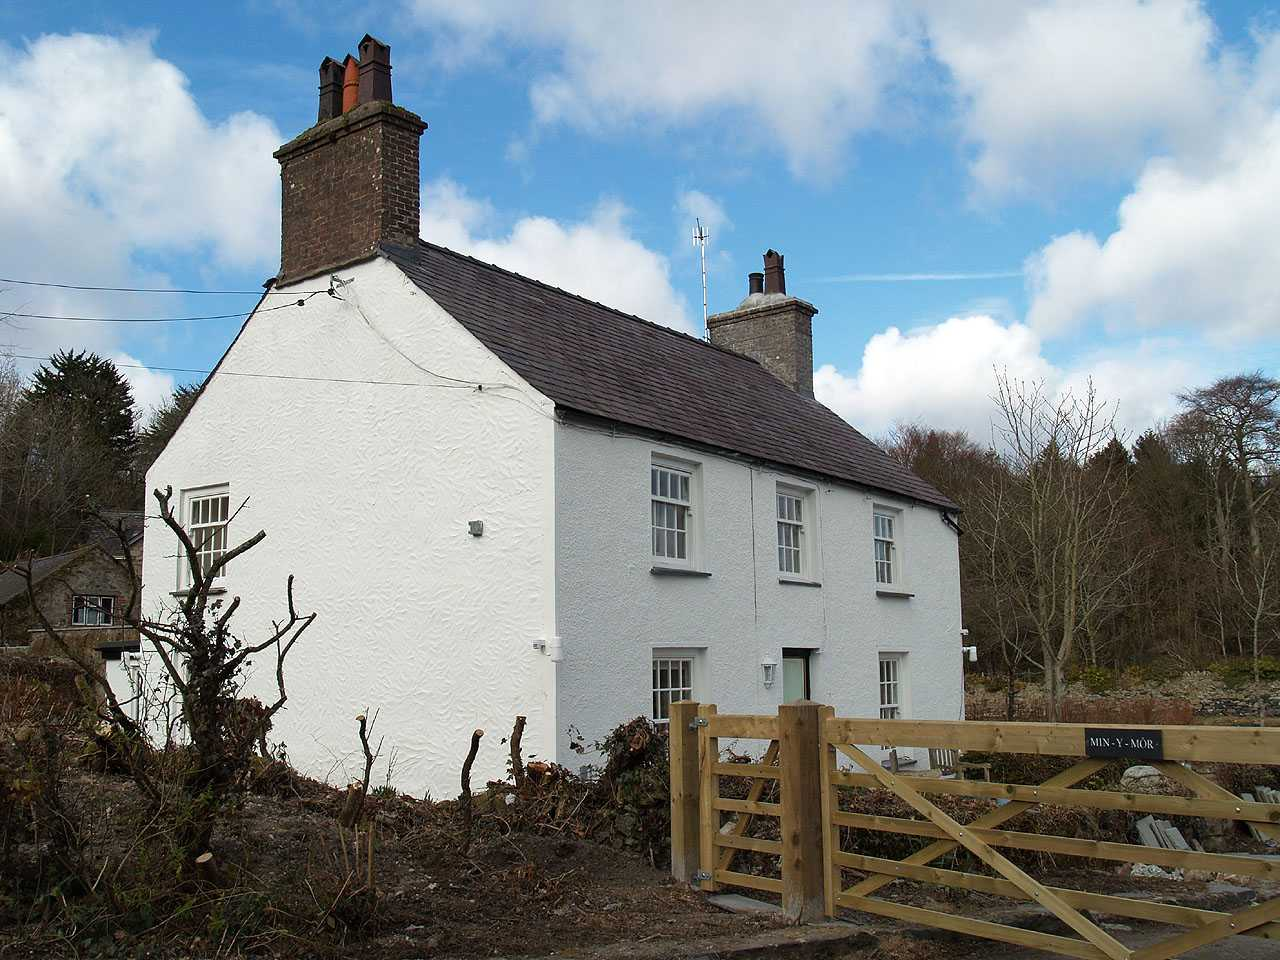 Llanfair Pwllgwyngyll, Min-Y-Mor, Pwll Fanogl, the former home of Sir Kyffin Williams